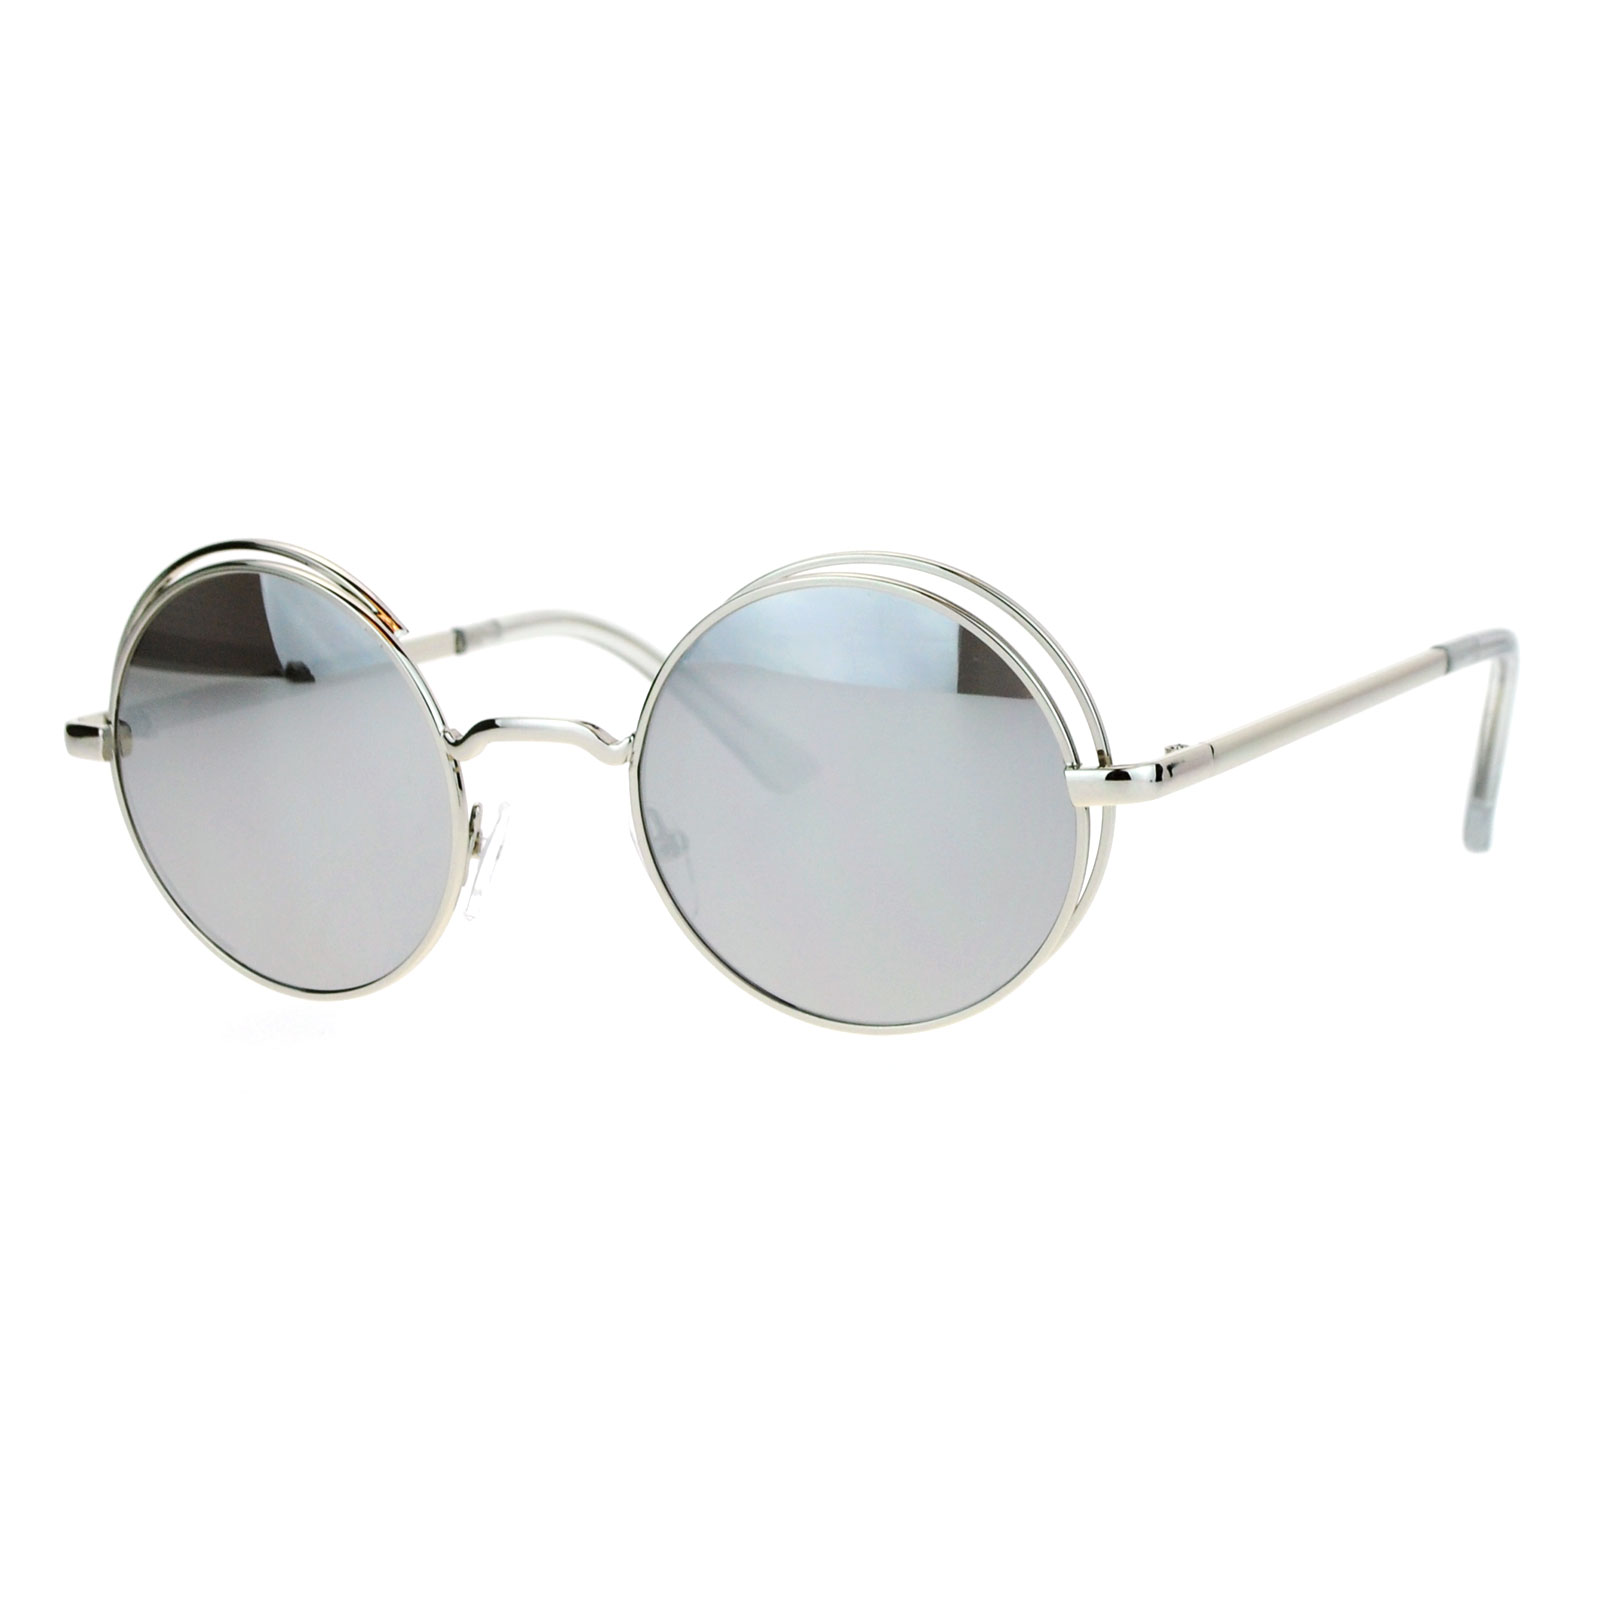 dff0f164677 SA106 - SA106 Mirrored Mirror Round Circle Len Double Rim Sunglasses Gold  Orange - Walmart.com